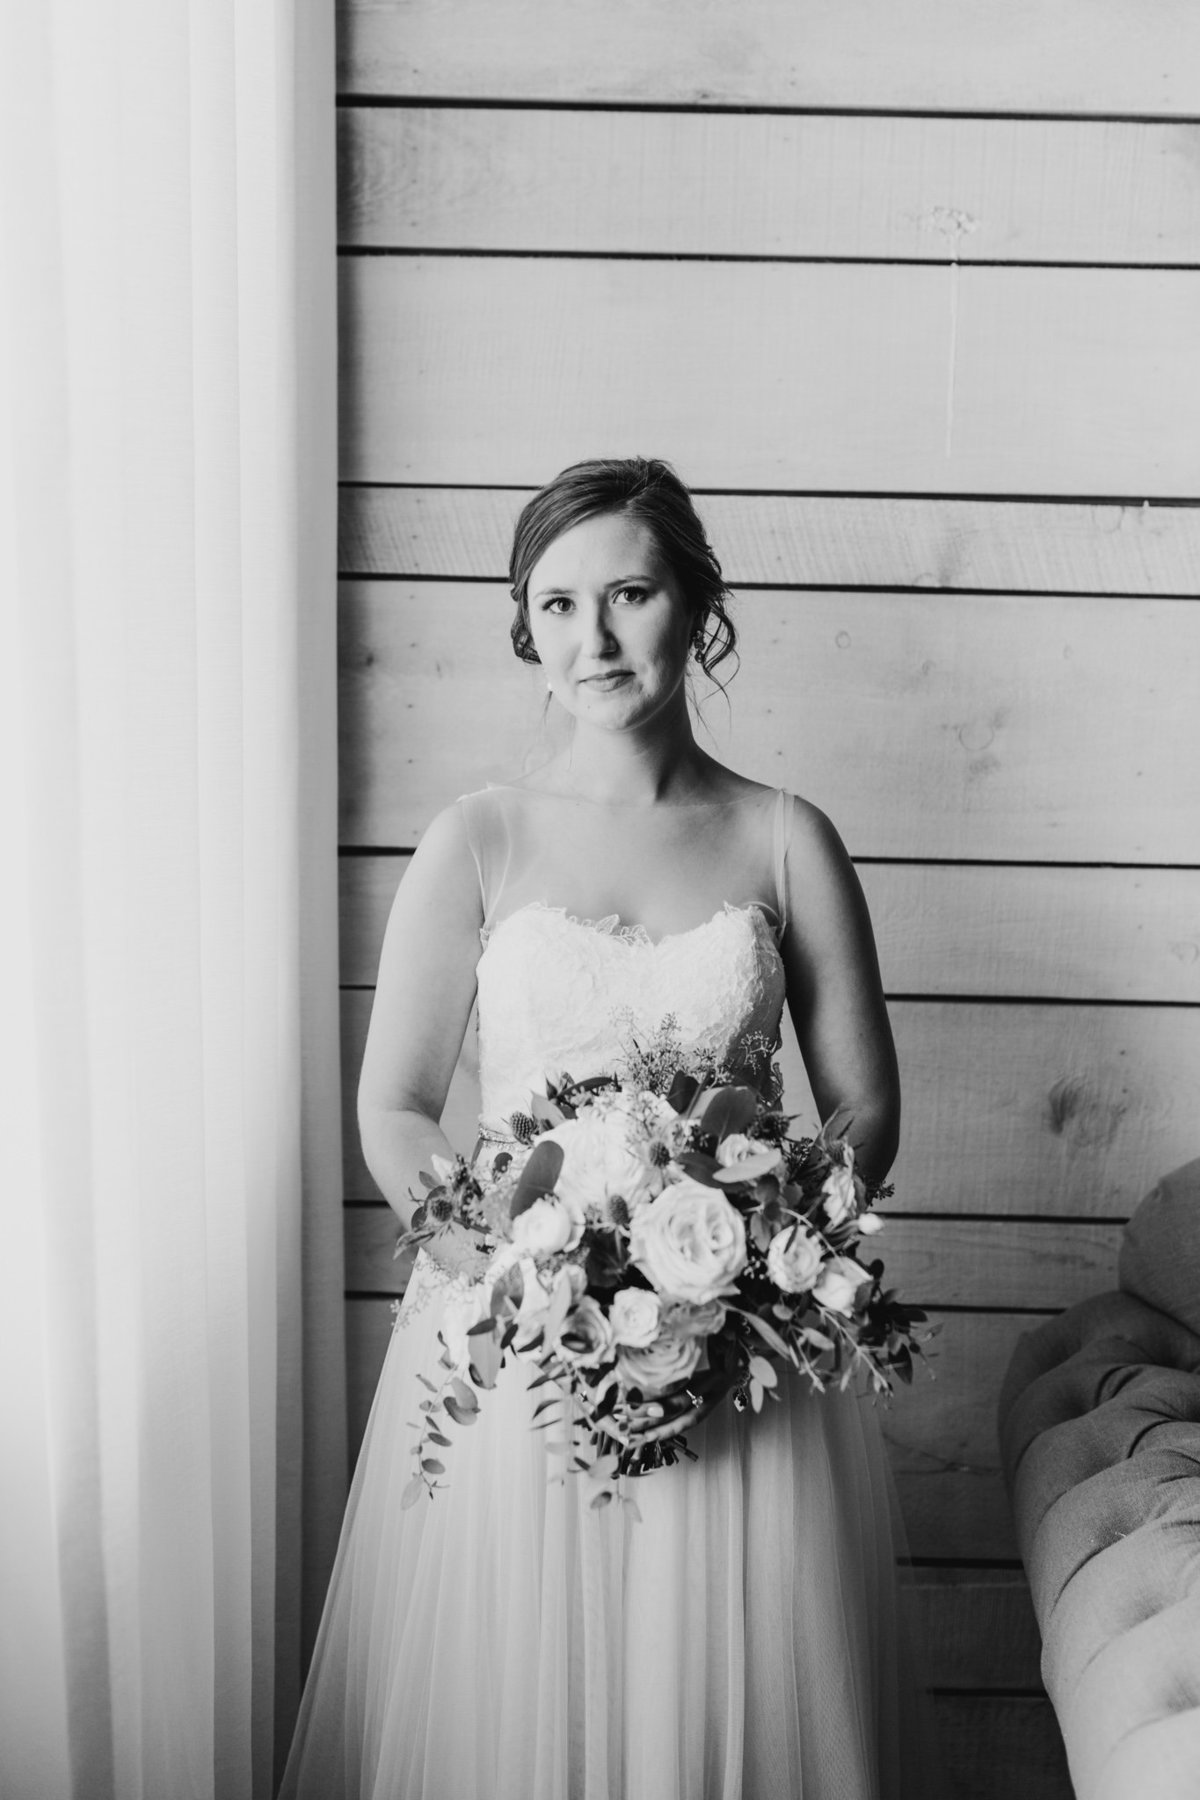 Alexa-Vossler-Photo_Dallas-Wedding-Photographer_North-Texas-Wedding-Photographer_Stephanie-Chase-Wedding-at-Morgan-Creek-Barn-Aubrey-Texas_71